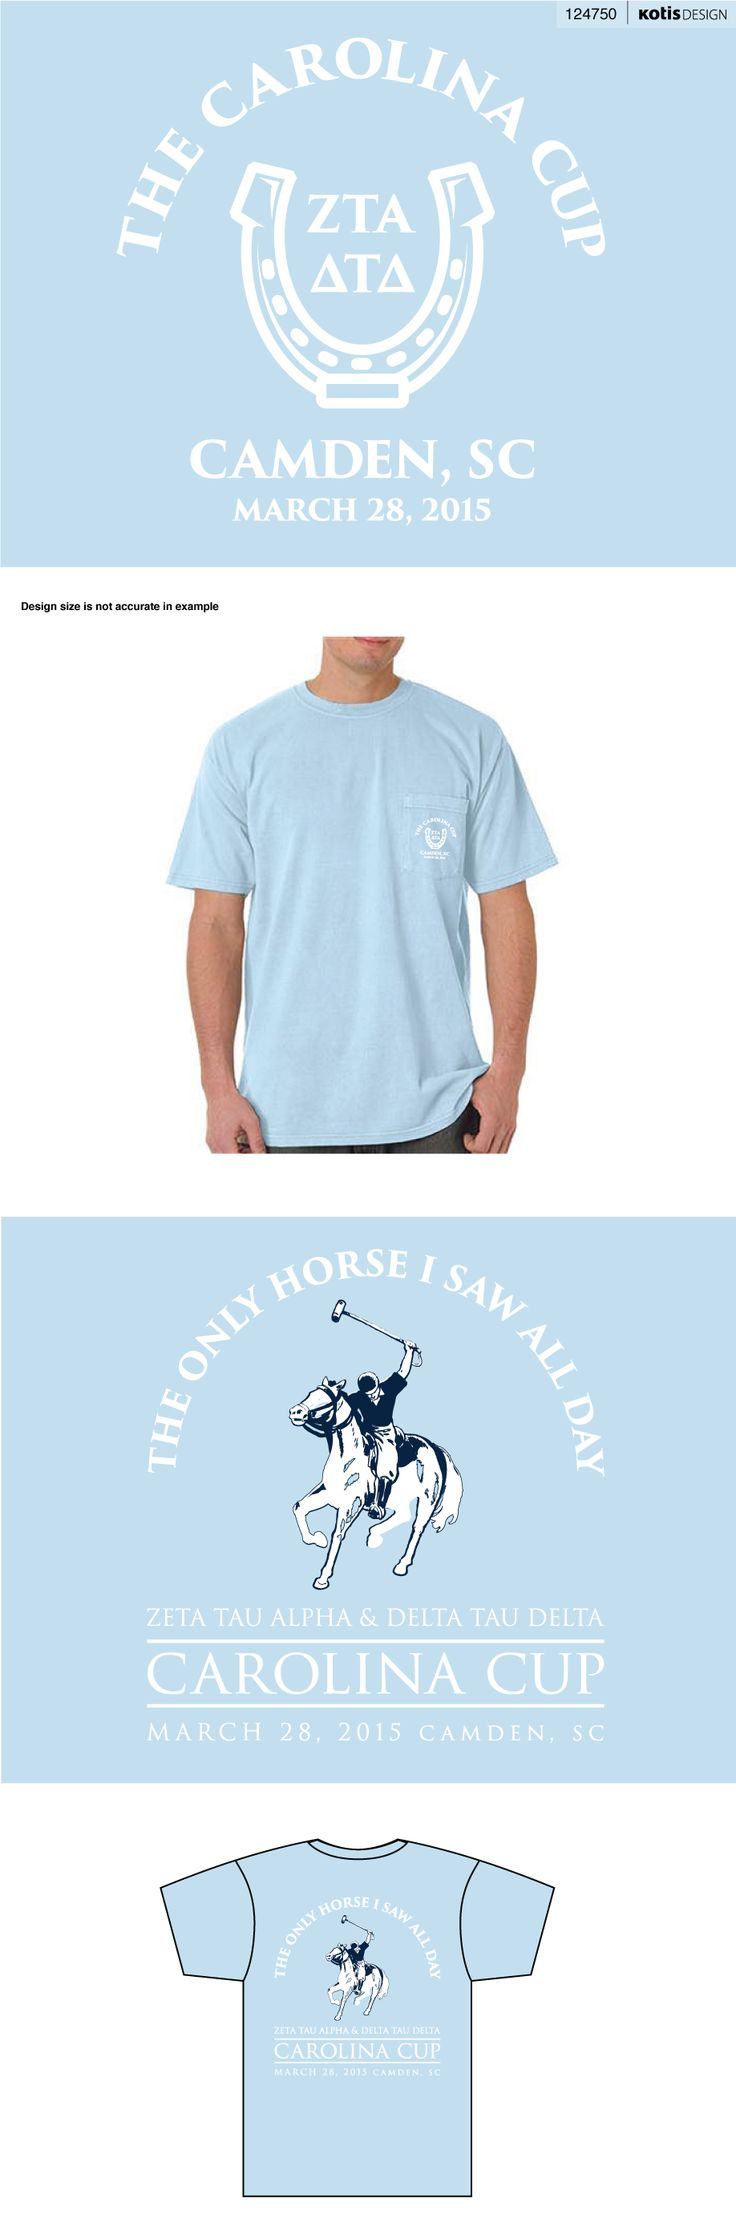 124750 - Duke ZTA | Carolina Cup Shirts '15 - View Proof - Kotis Design